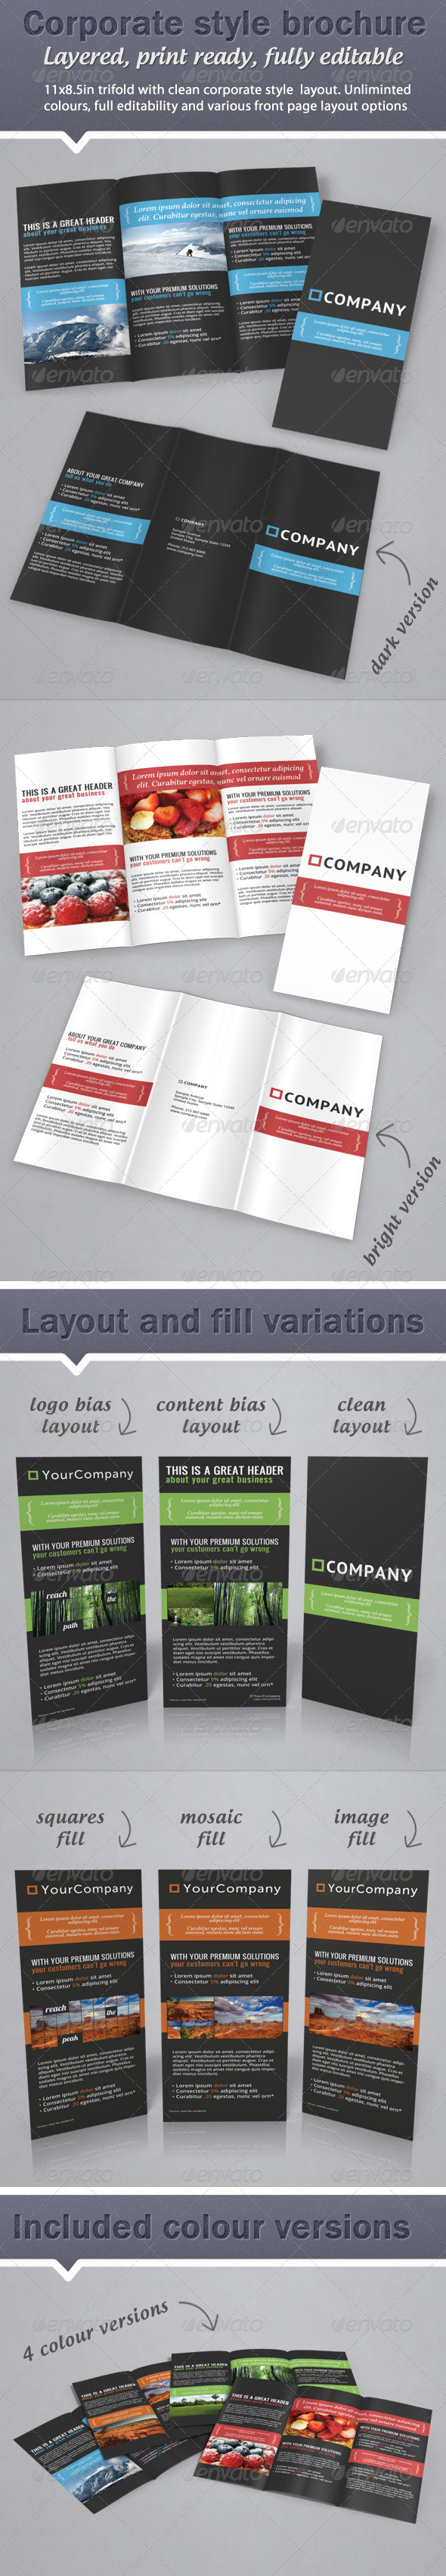 Graphic River Corporate Business Style Trifold Brochure  Print Templates -  Brochures  Corporate 775419